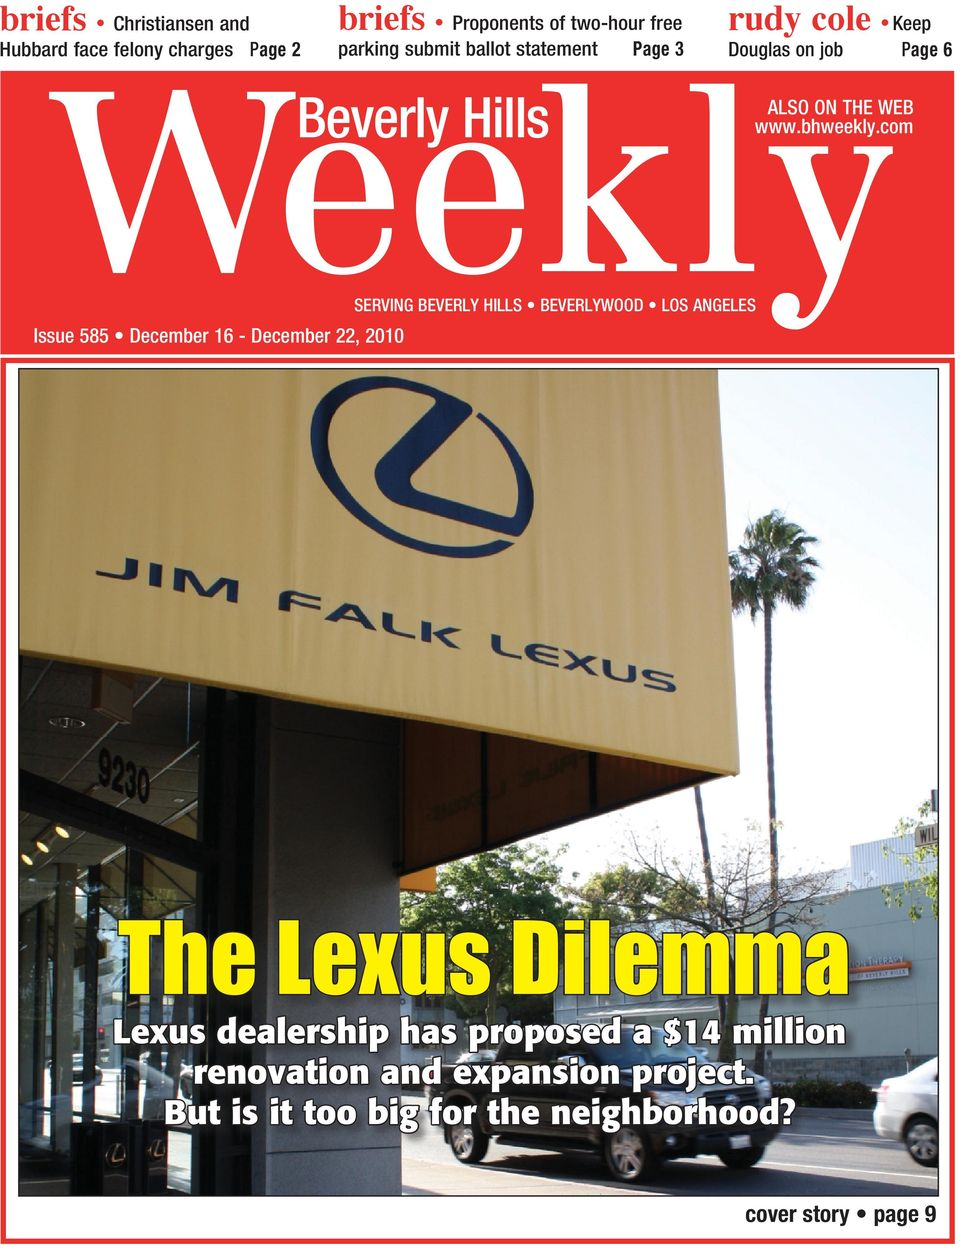 com SERVING BEVERLY HILLS BEVERLYWOOD LOS ANGELES Issue 585 December 16 - December 22, 2010 The Lexus Dilemma Lexus